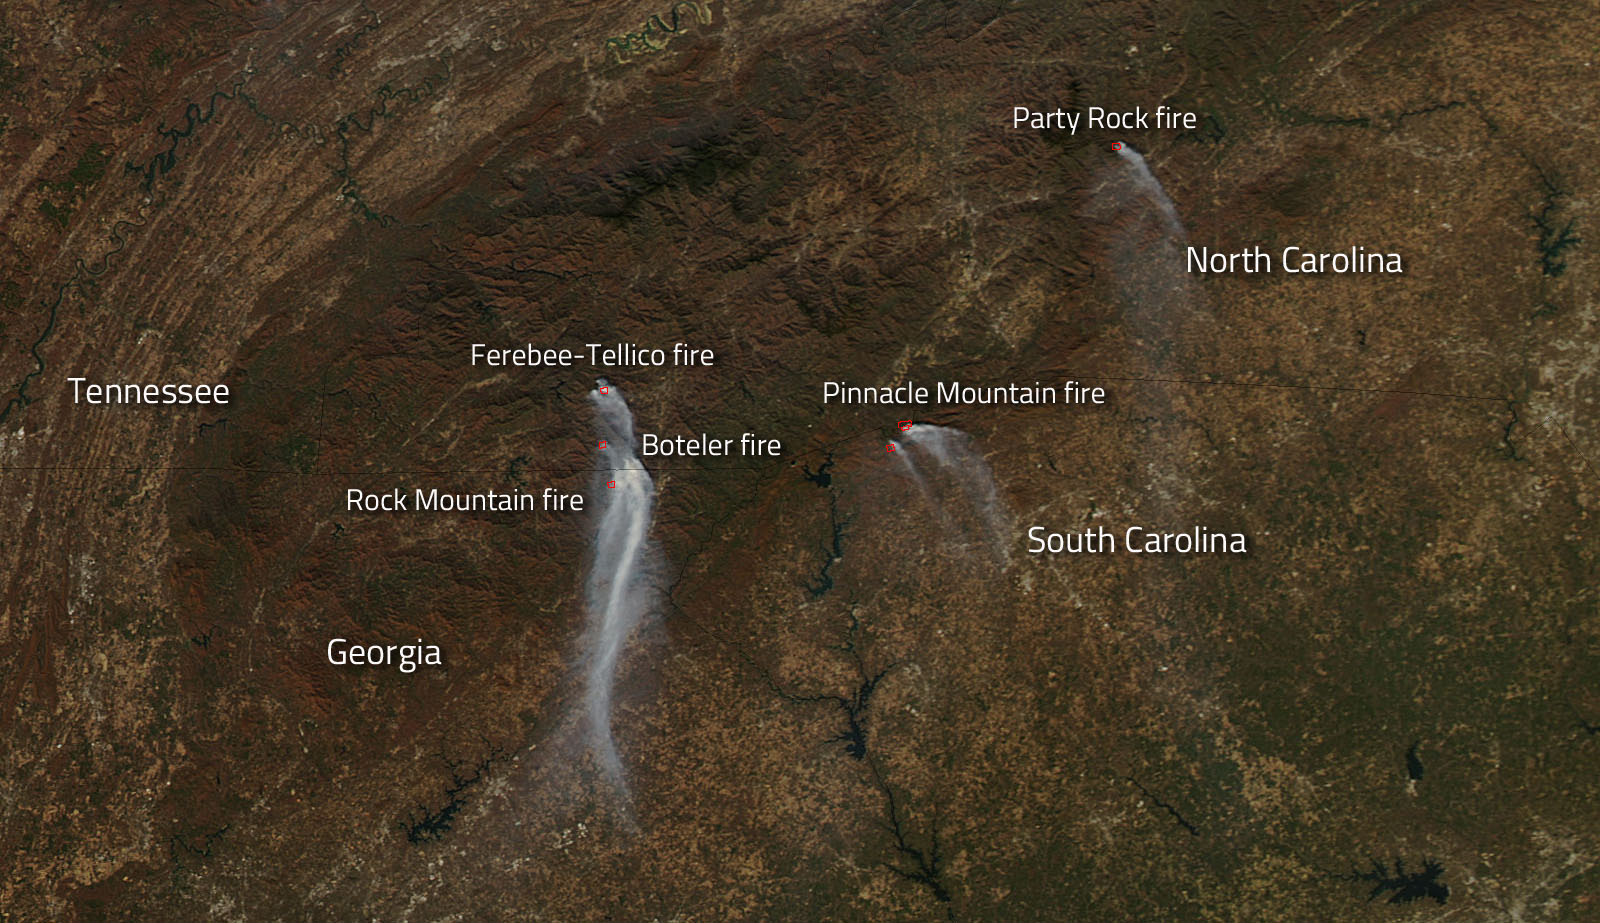 NASA Tracks Wildfires Still Plaguing Southeastern US NASA - Wildfires map in southeastern us